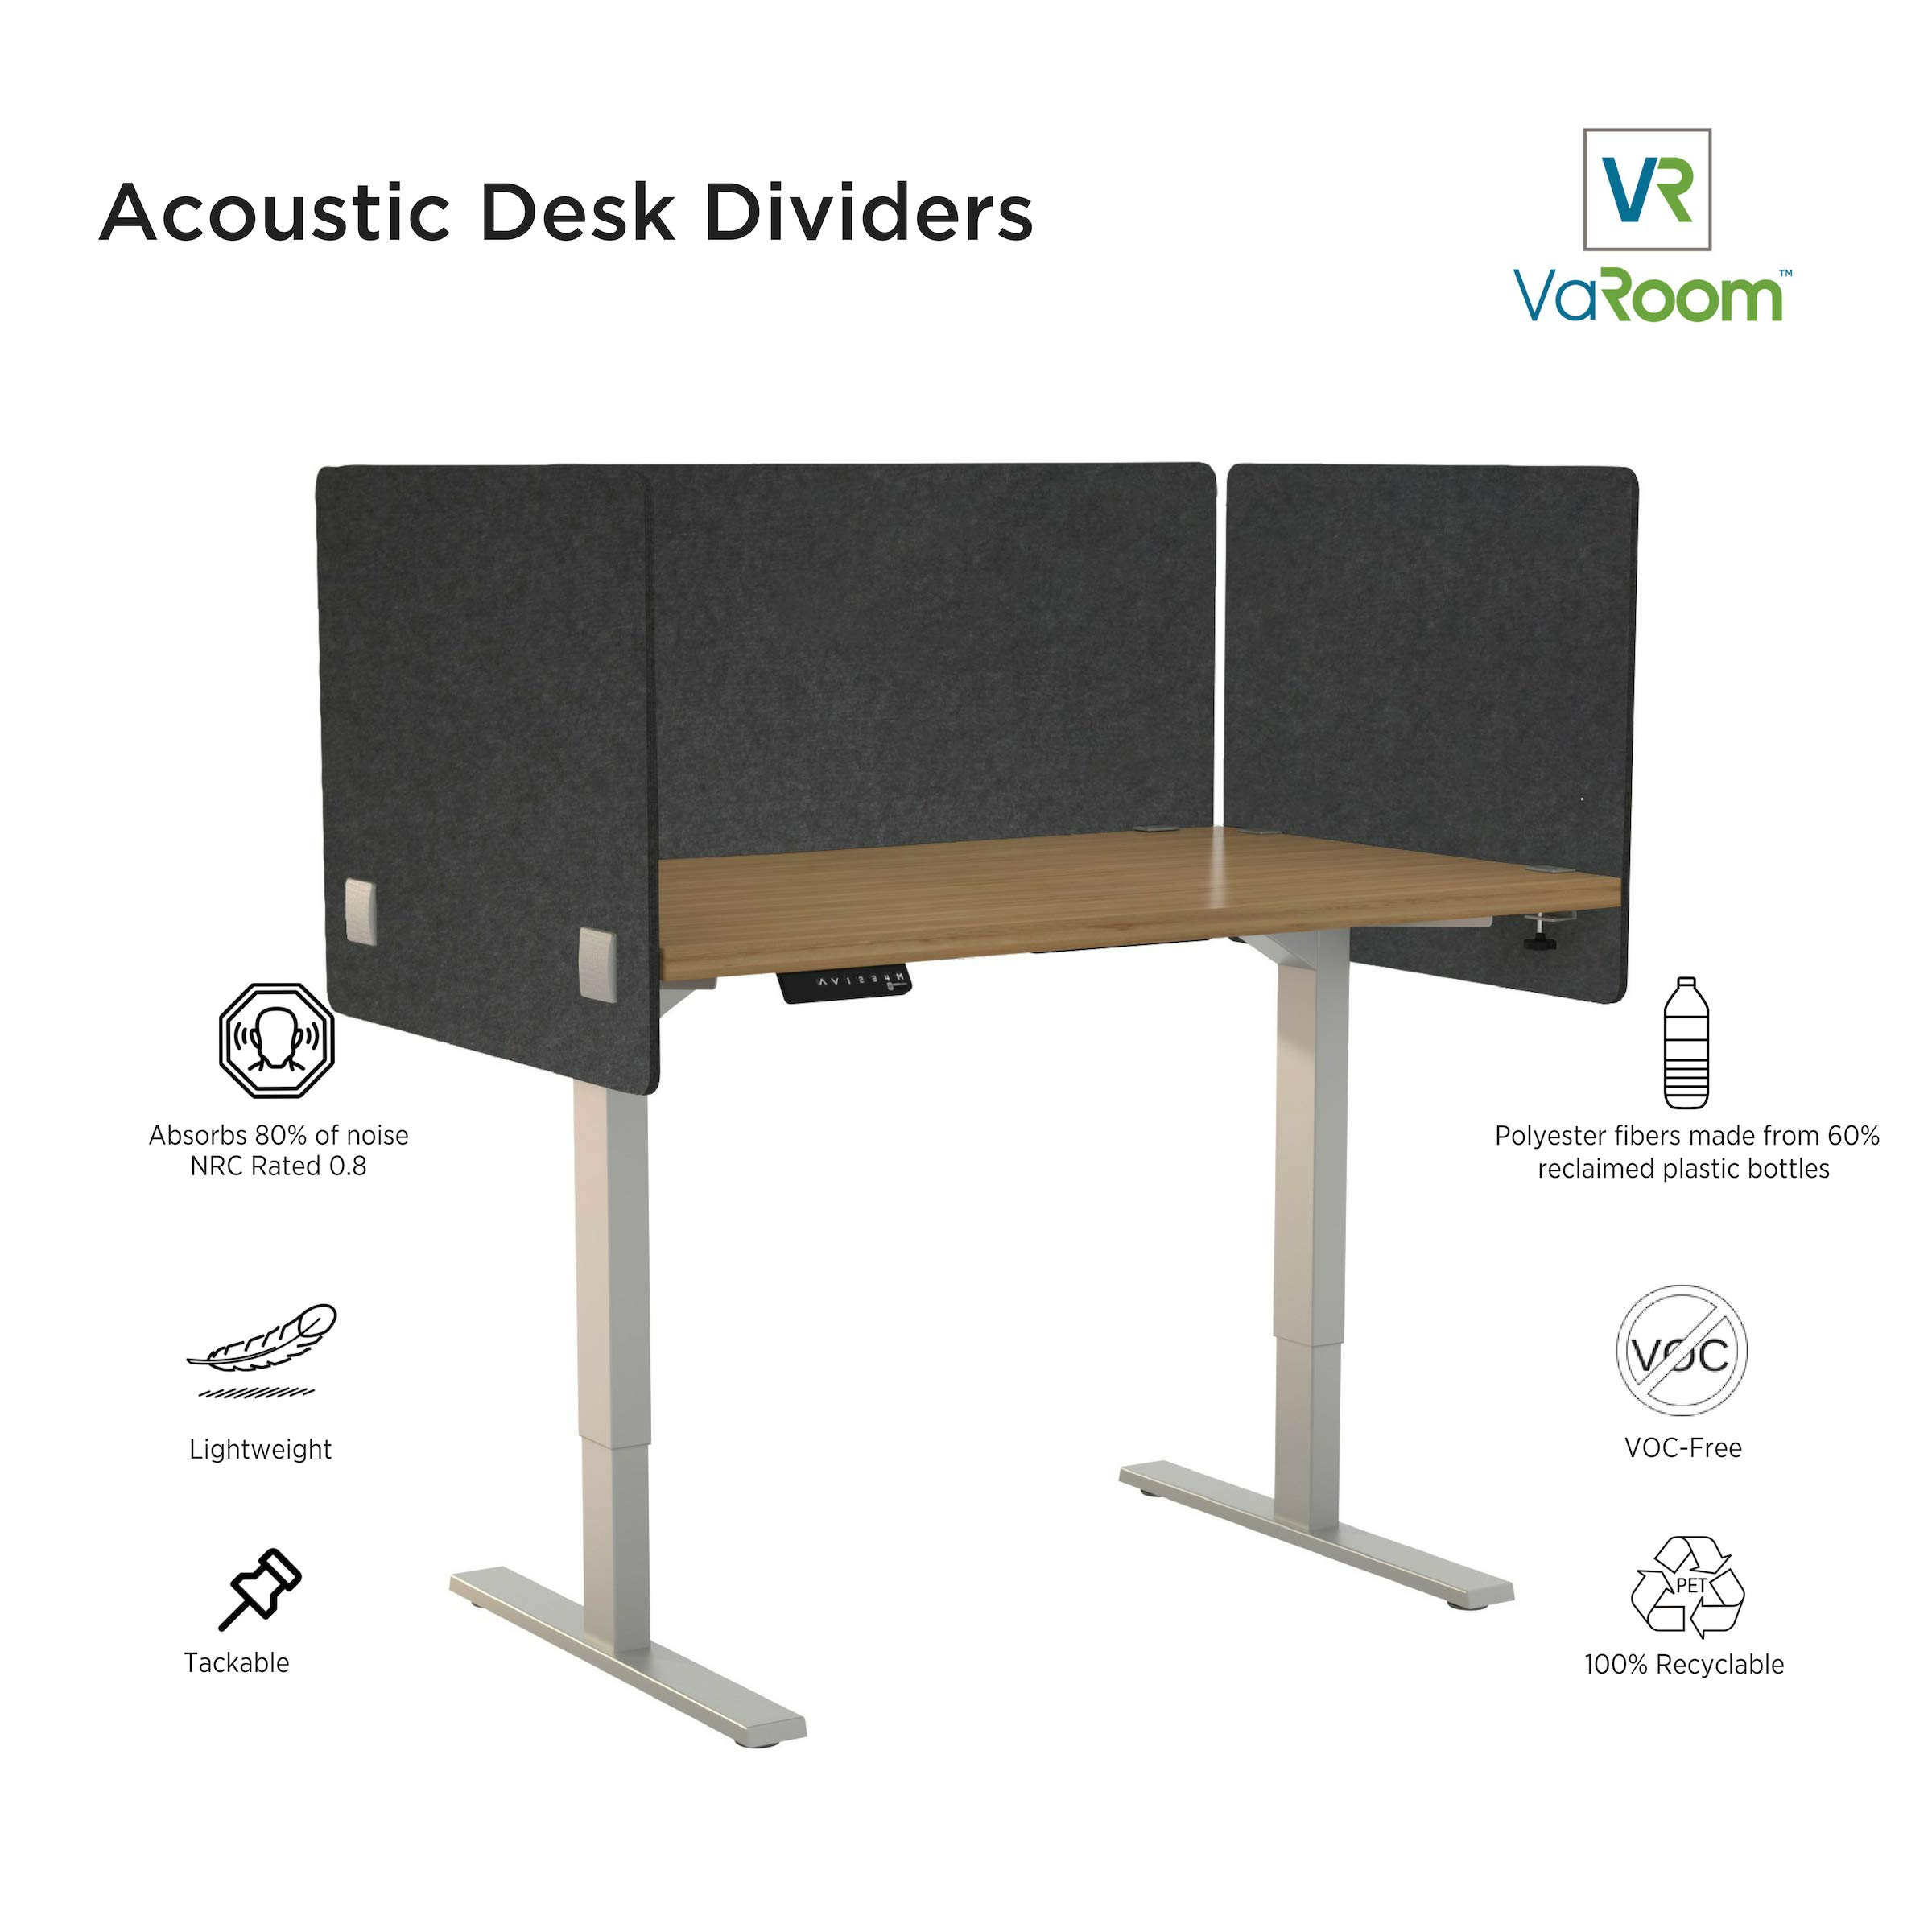 """VaRoom Acoustic Partition, Sound Absorbing Desk Divider – 24"""" W x 24""""H Privacy Desk Mounted Cubicle Panel, Charcoal Grey by VaRoom (Image #4)"""